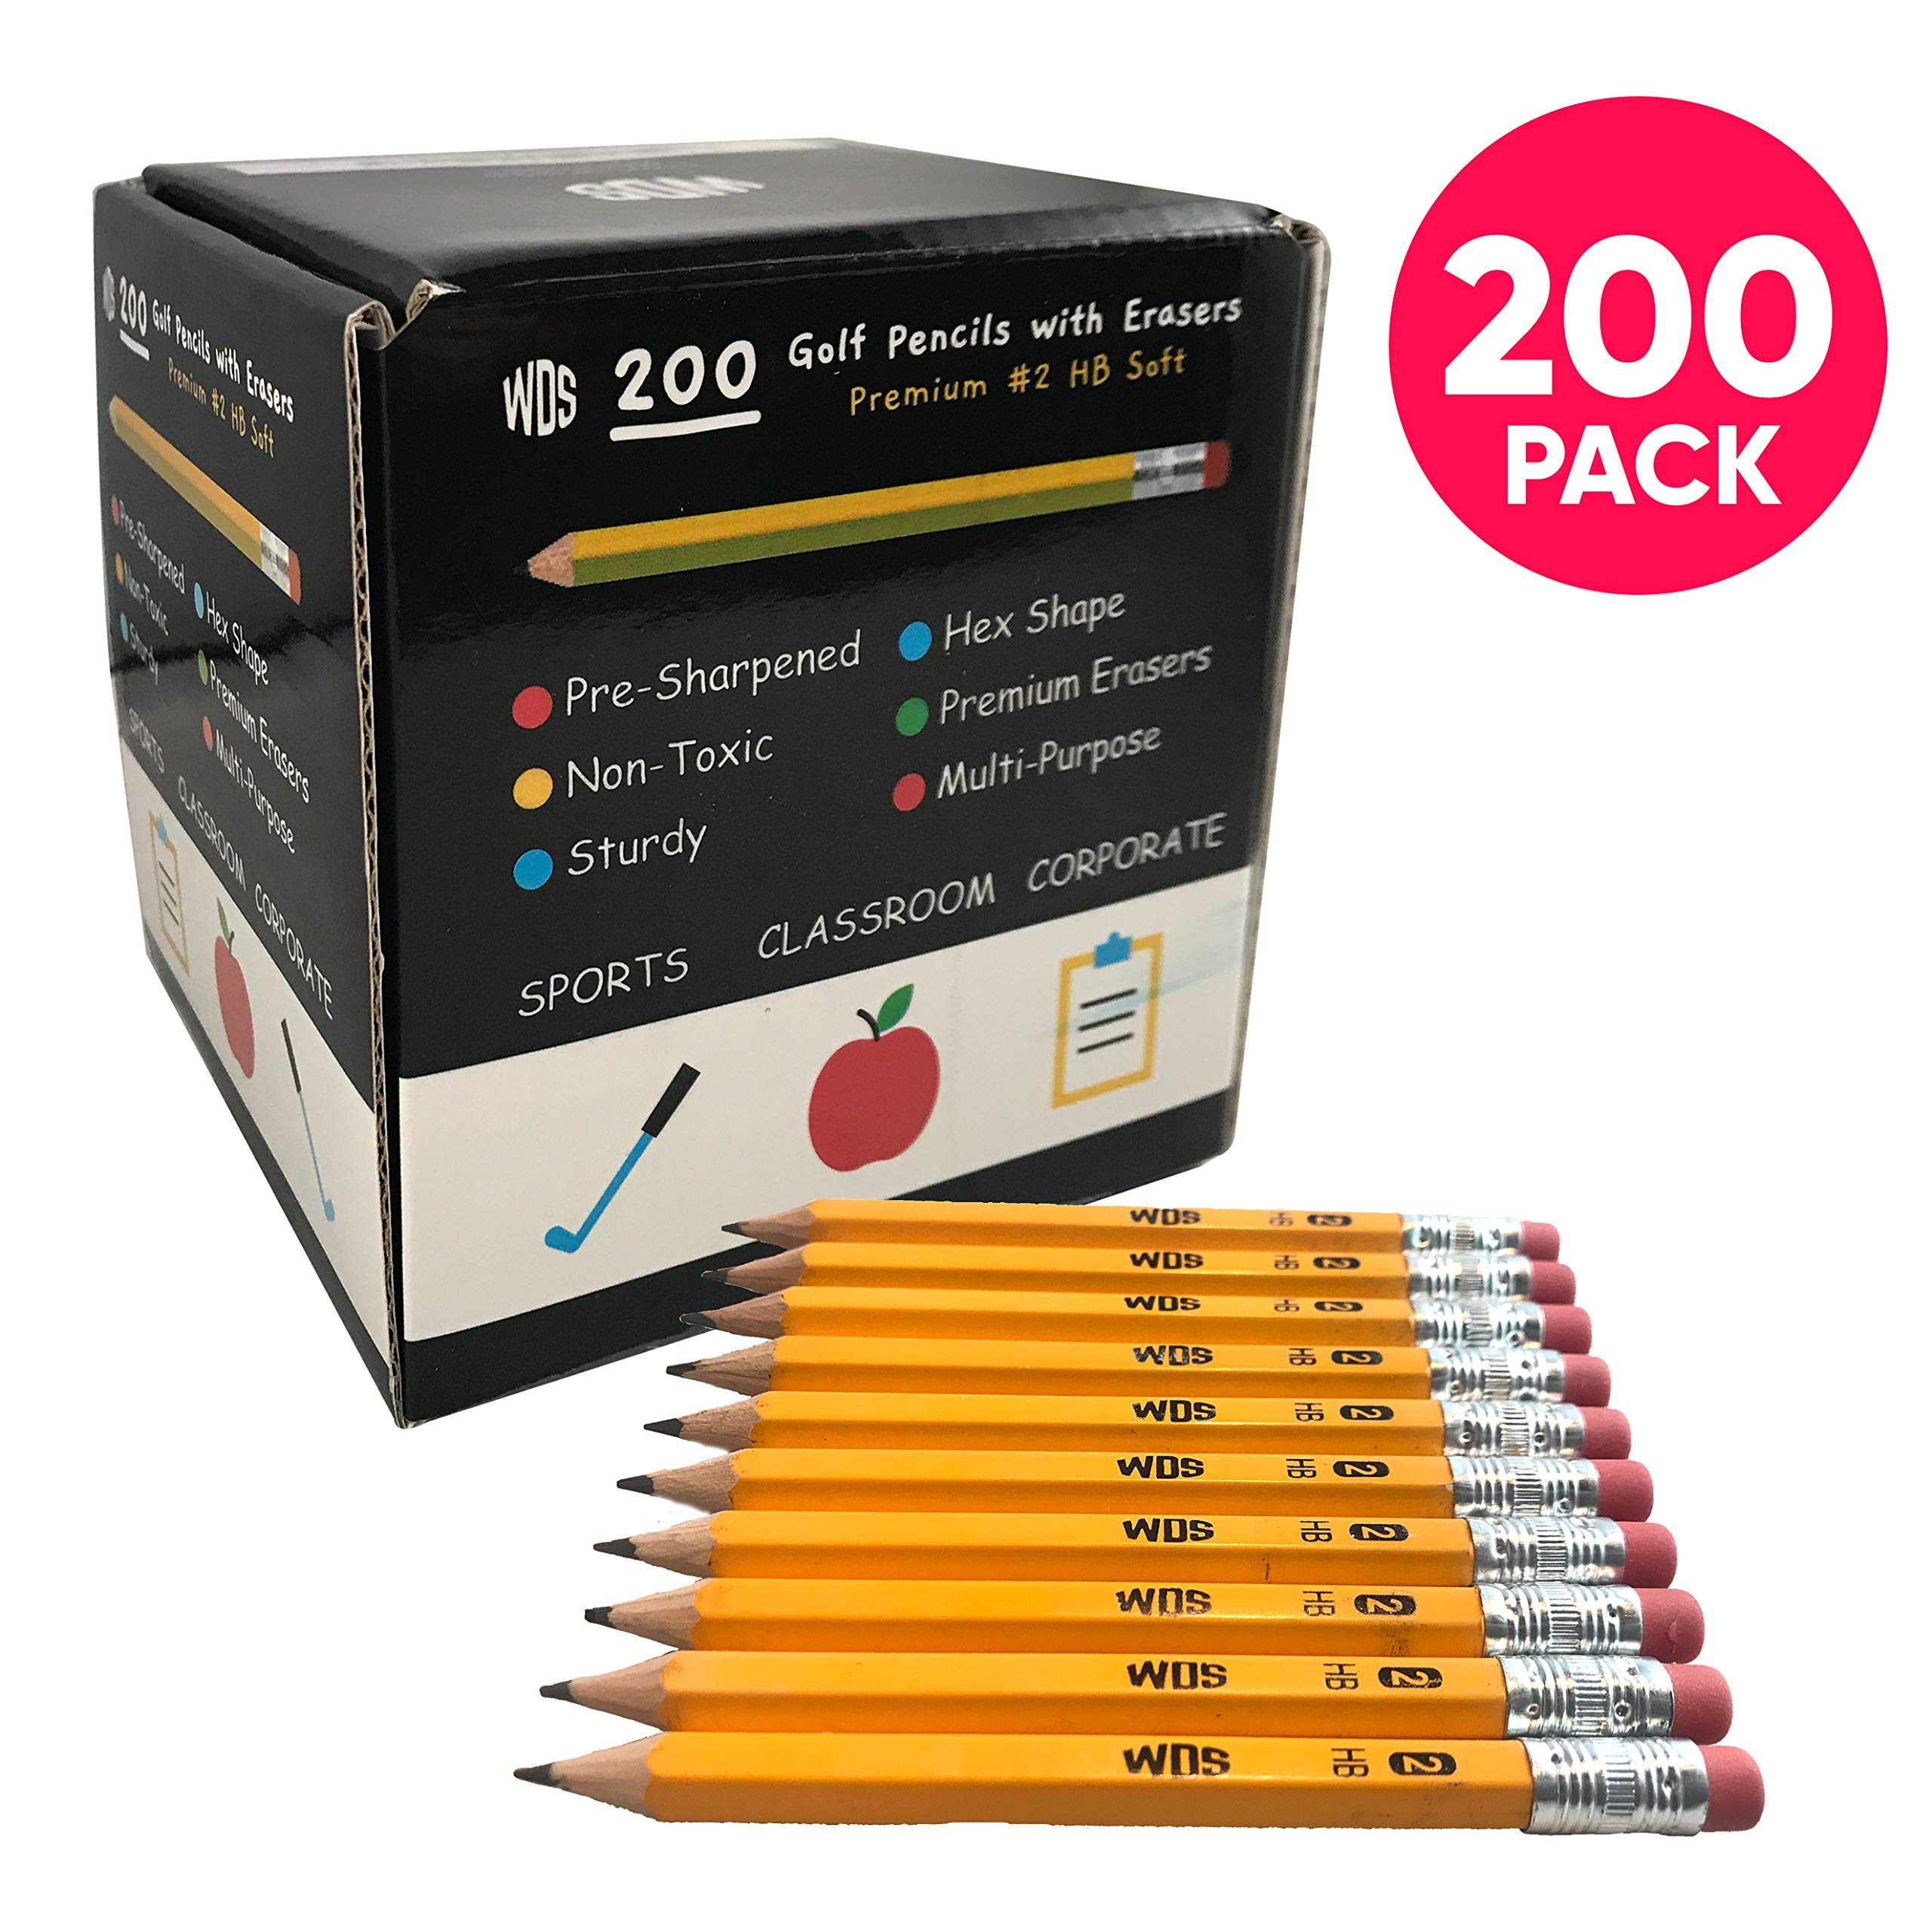 200 Golf Pencils with Erasers for Kids - Bulk Mini Pencils Presharpened in Colorful Box - Small Wood Pencil For Students Teachers Handwriting Classroom Sports Office Church Pew - Premium #2 HB Soft by WDS